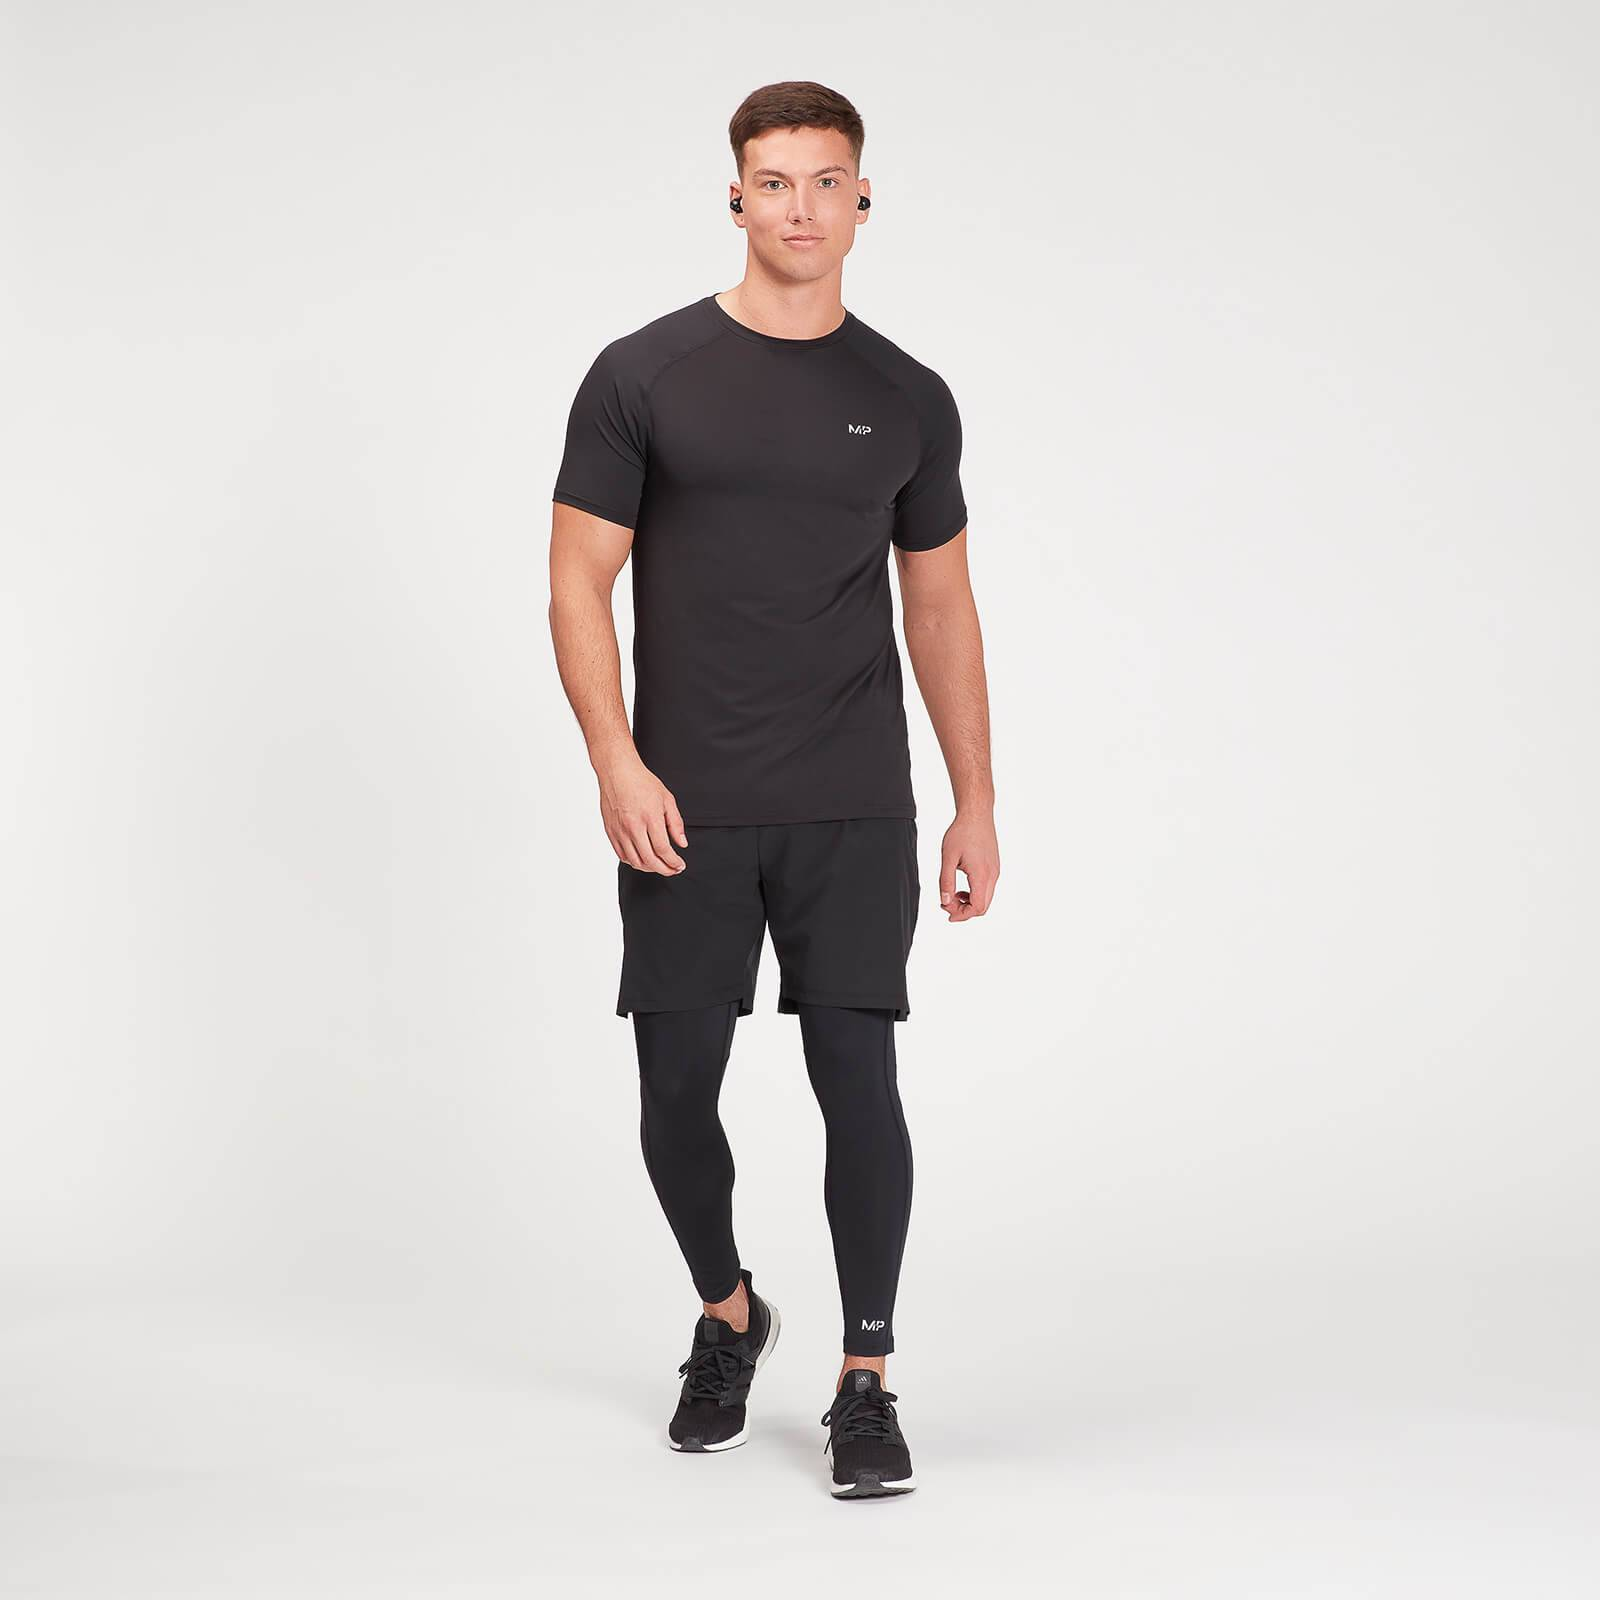 Mp Leggings sportivi attillati  Essentials Base da uomo - Neri - XS